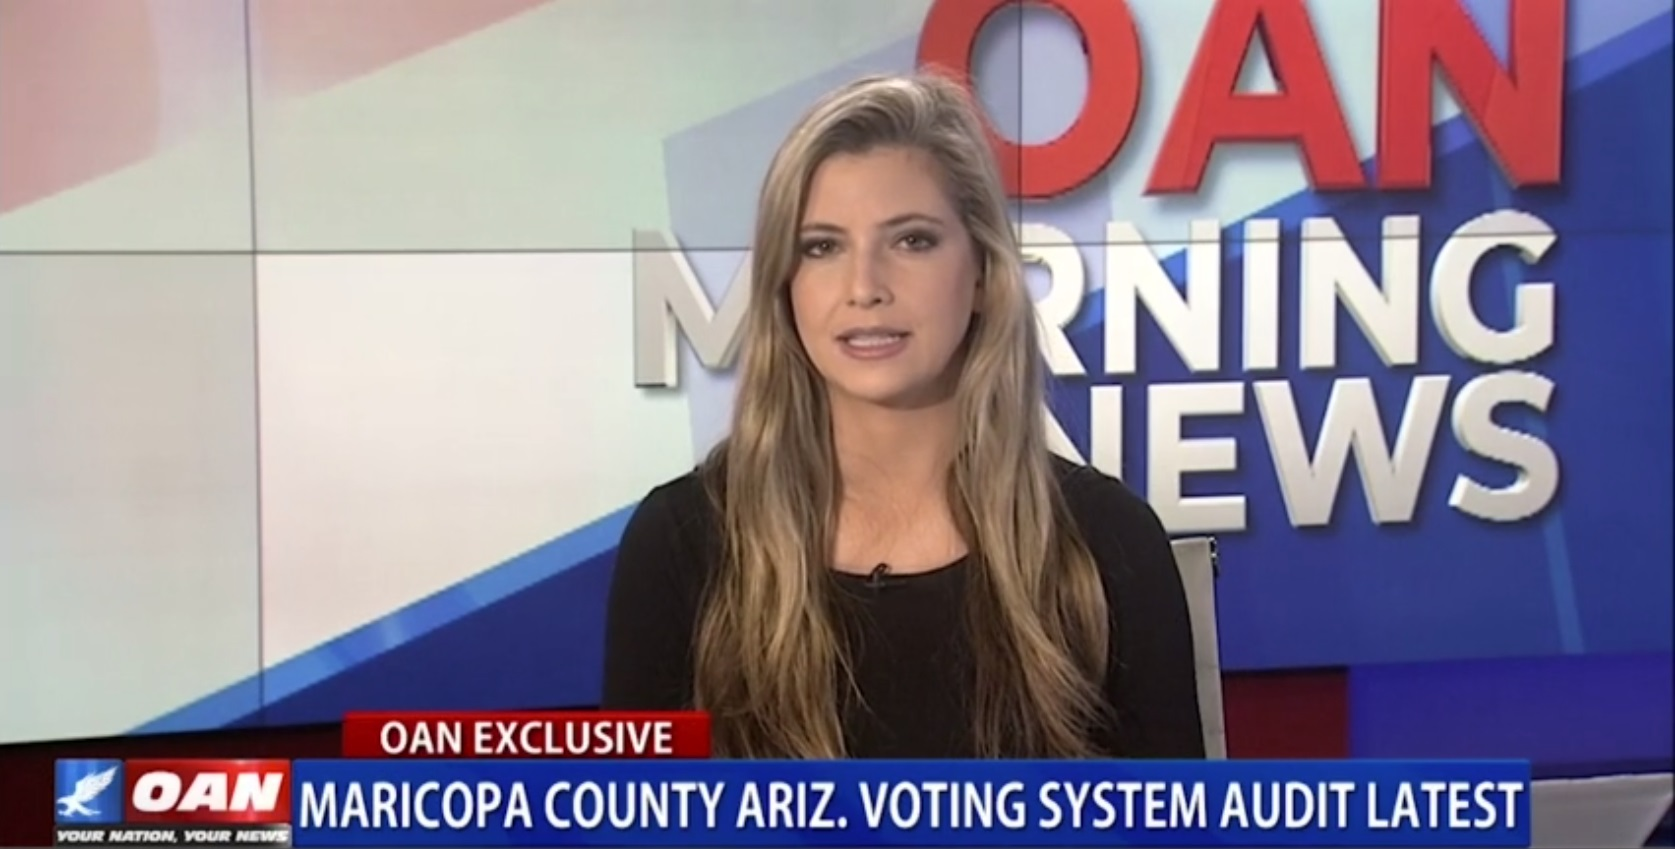 Maricopa County, Ariz. voting system audit latest